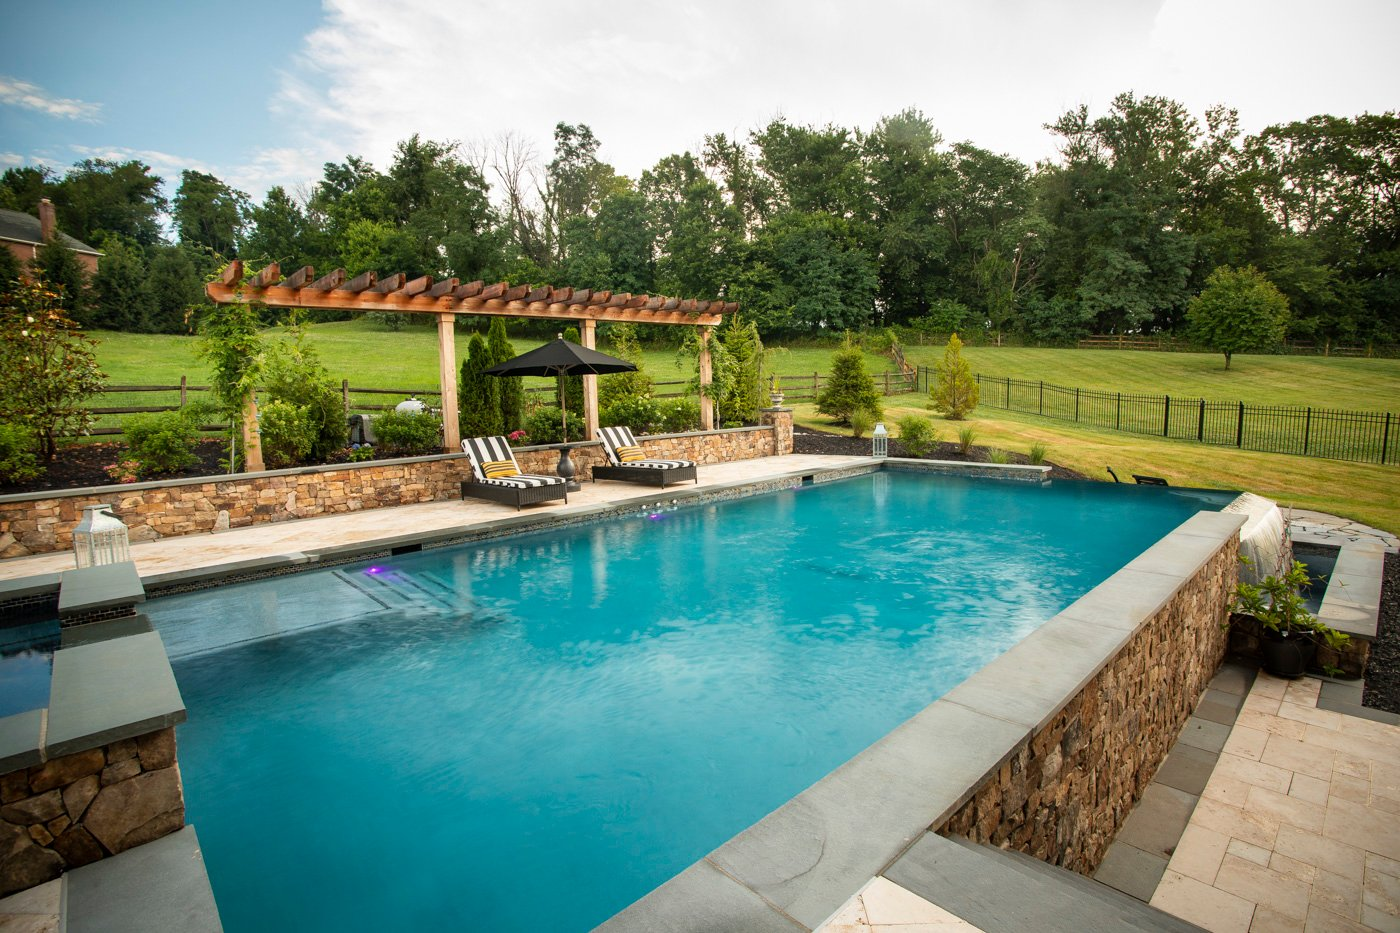 infinity edge pool, patio, and landscape